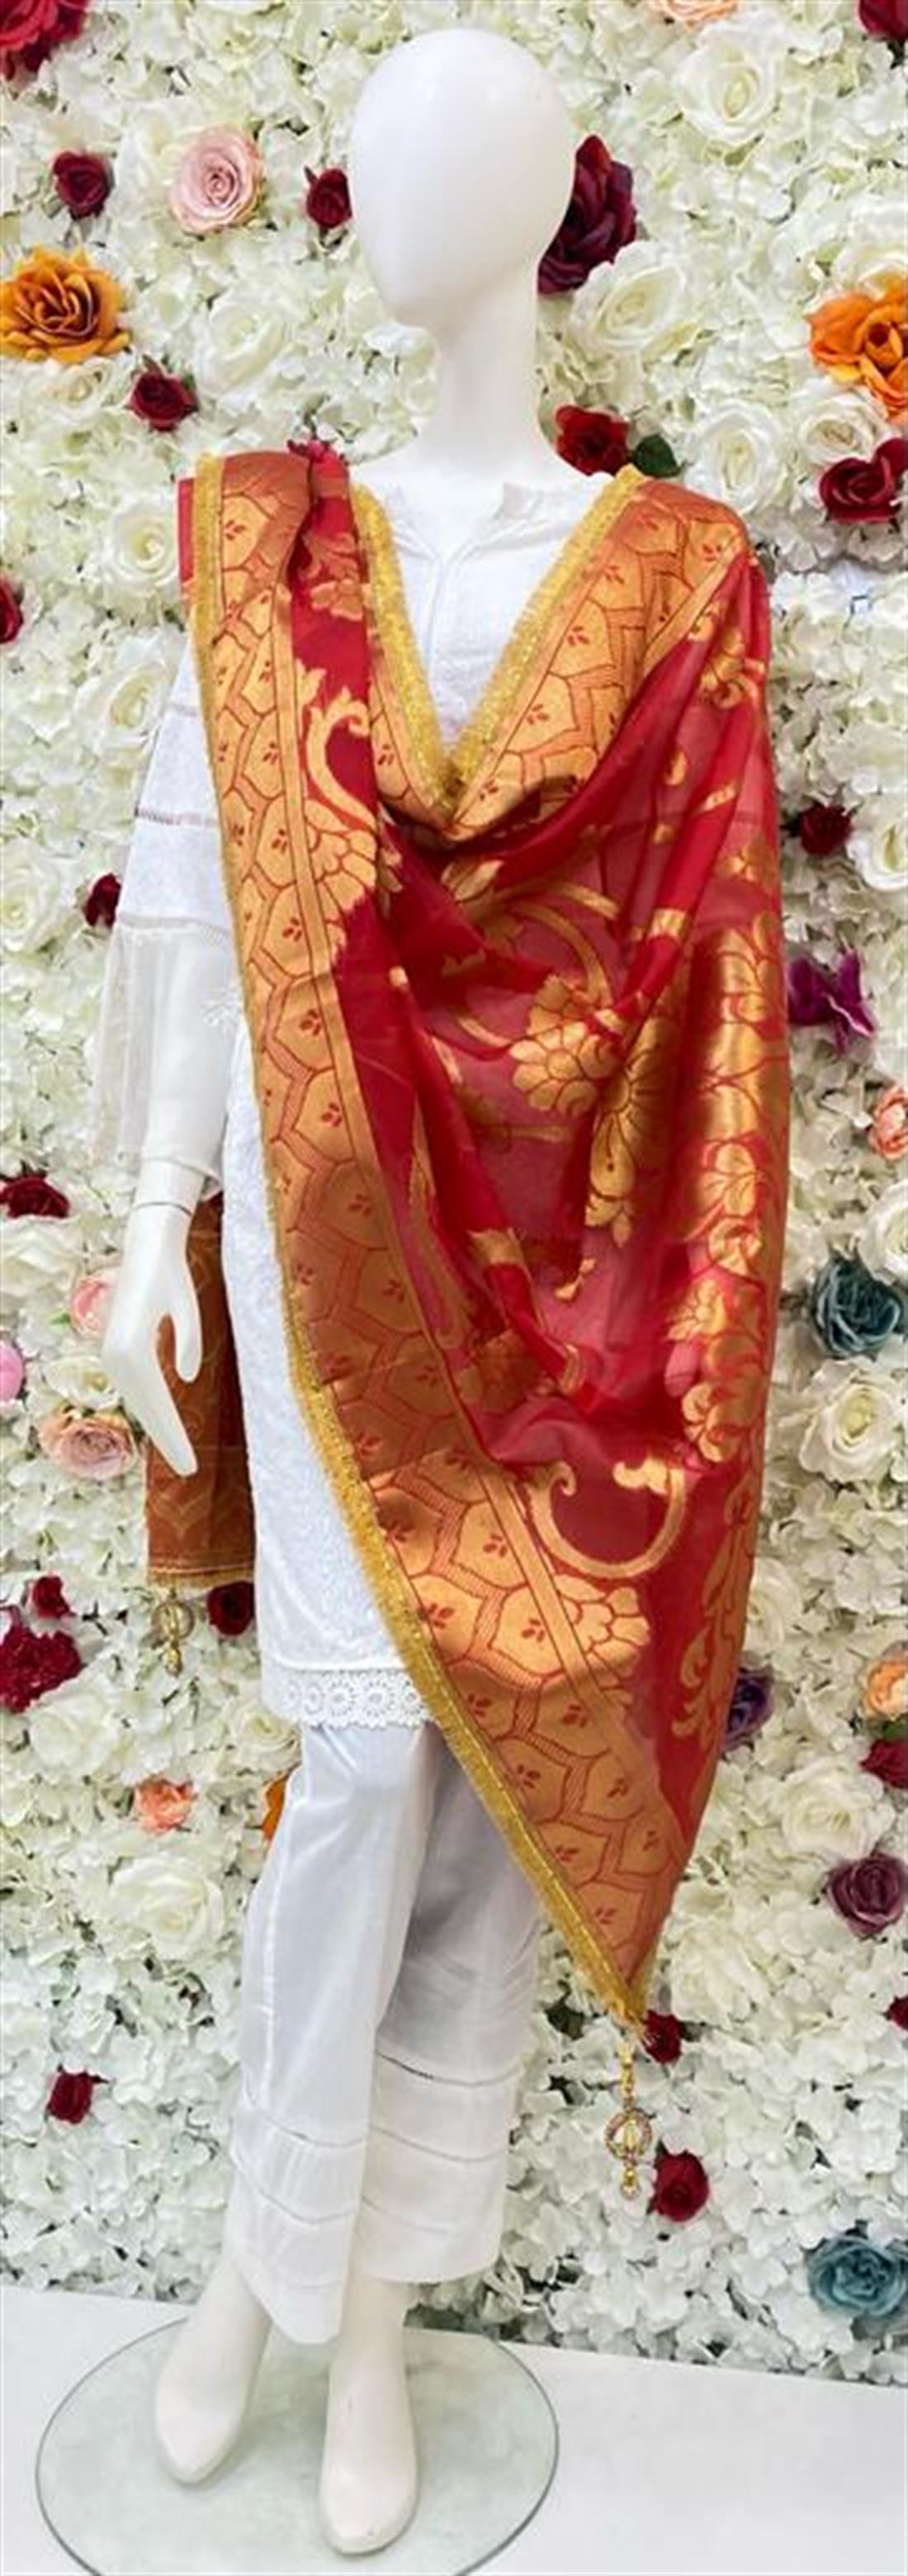 Shawls and Scarves